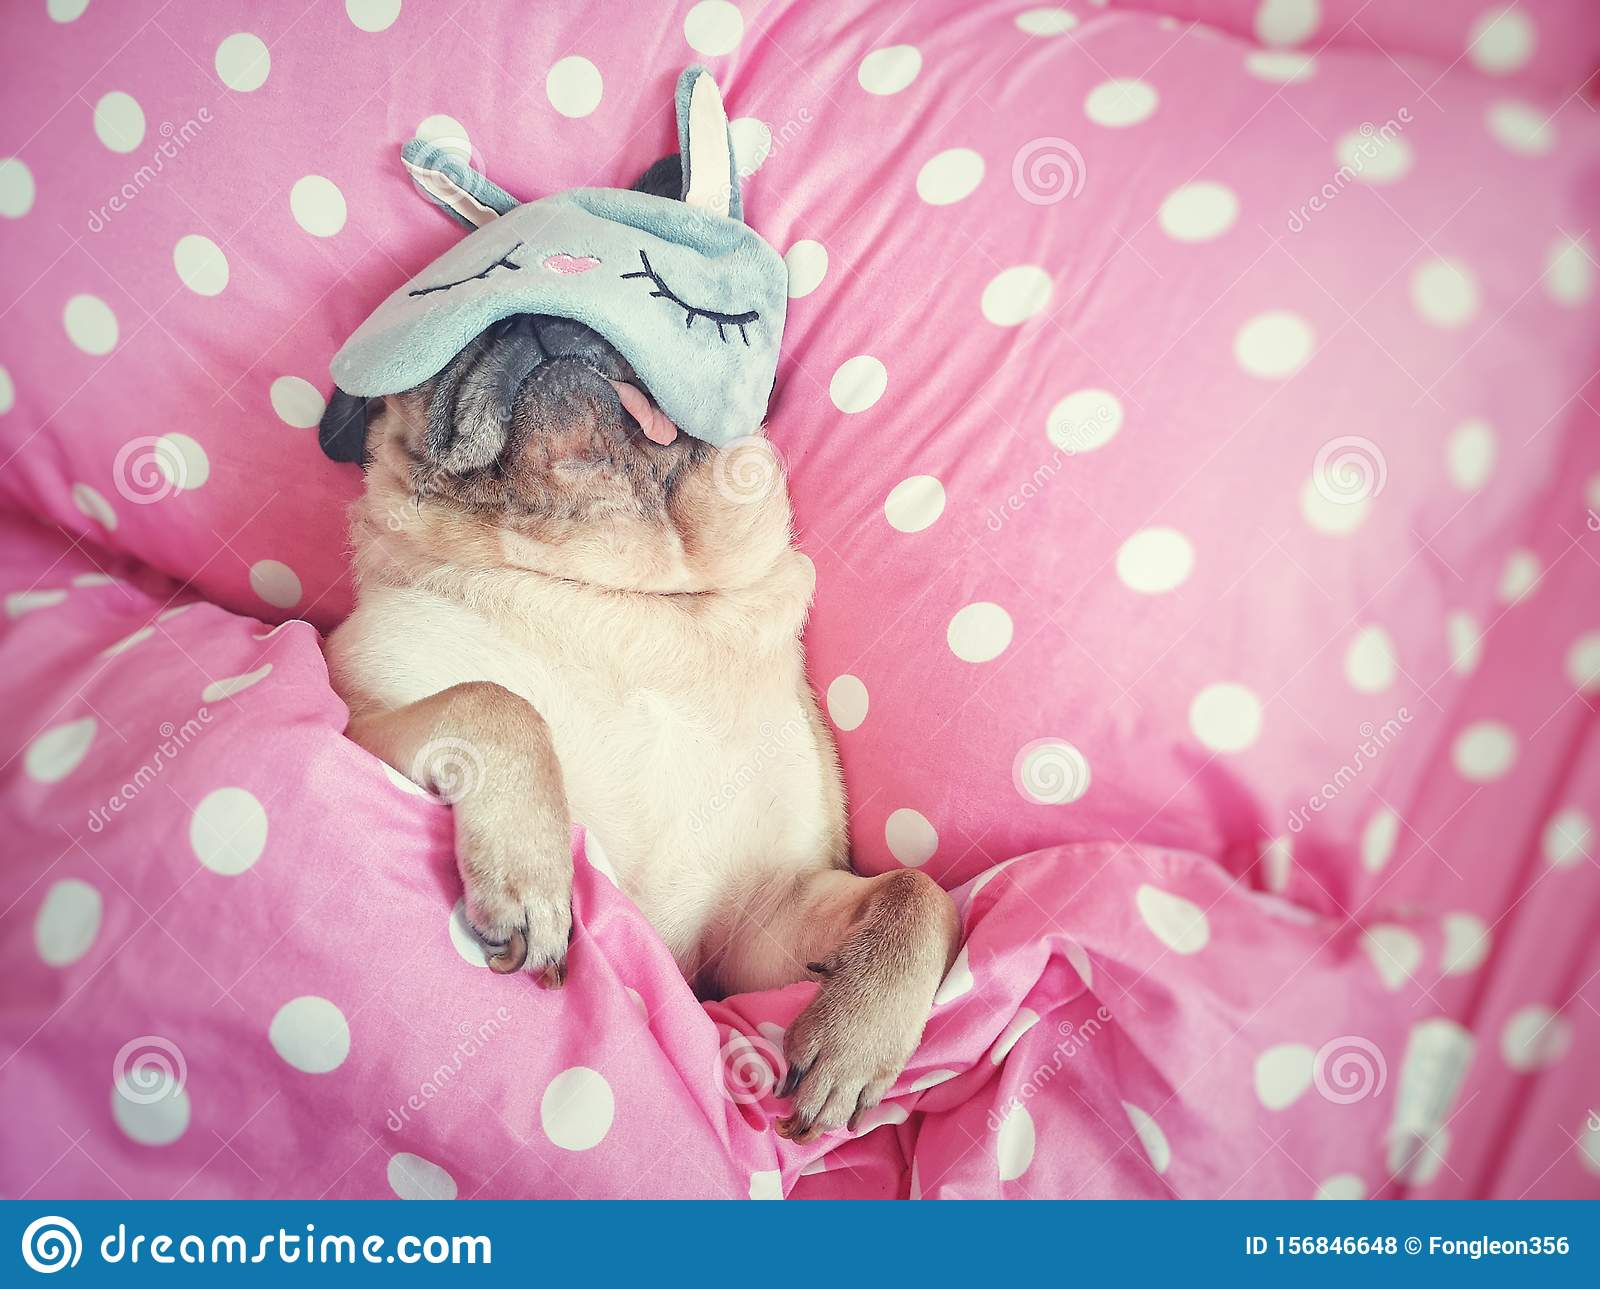 Cute Pug Dog Sleep Rest With Funny Mask In The Bed Wrap With Blanket And Tongue Sticking Out In The Lazy Time Stock Photo Image Of Pillow Home 156846648